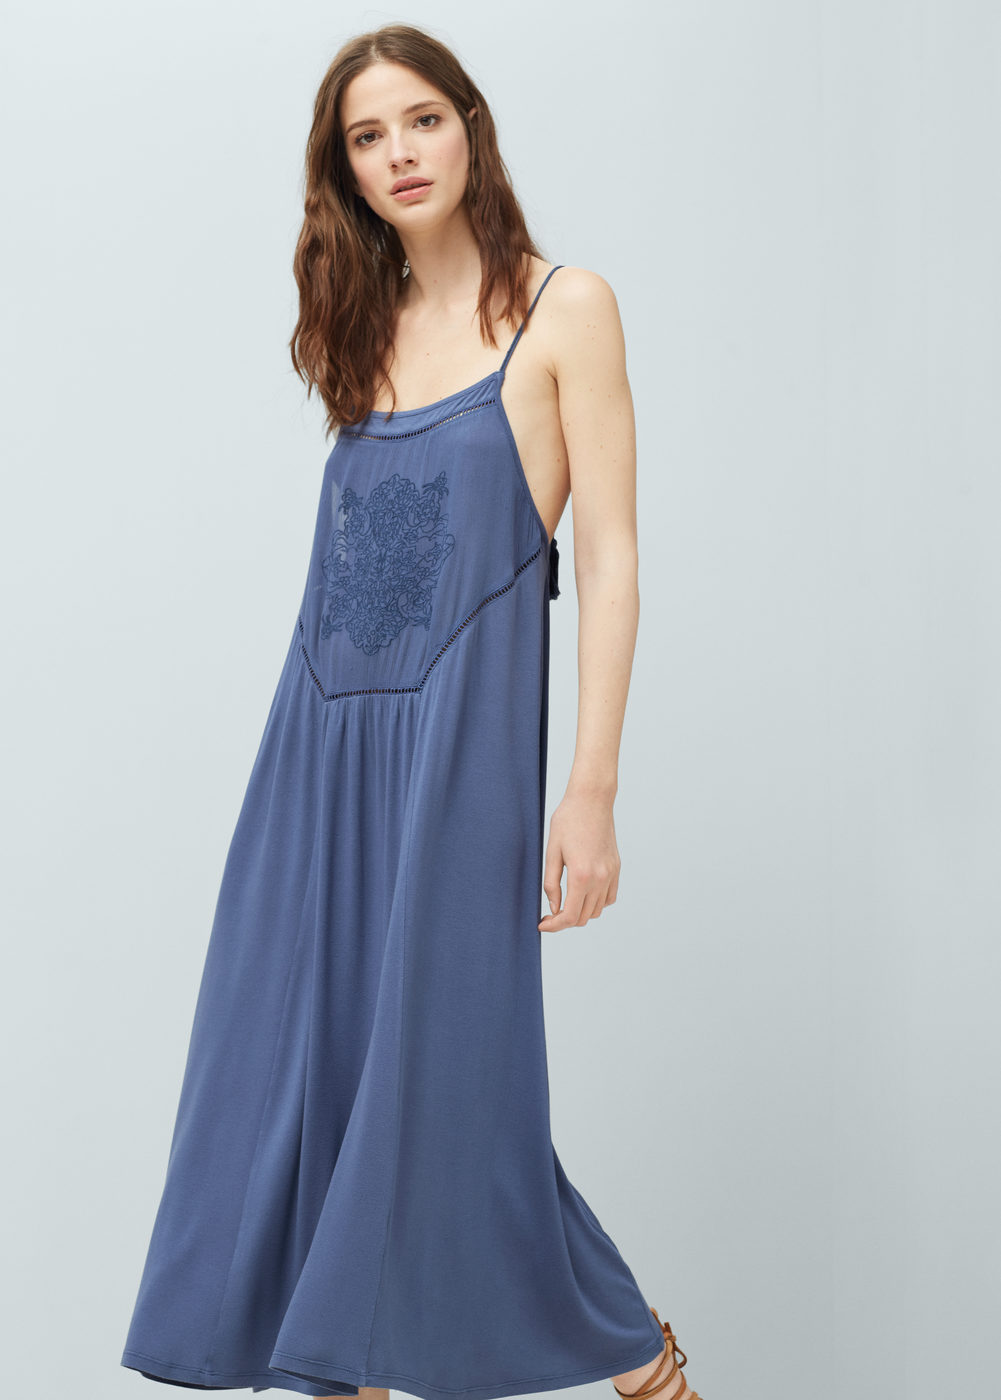 is it safe to talk summer dresses yet? | MyFashionable40s | Bloglovin\'